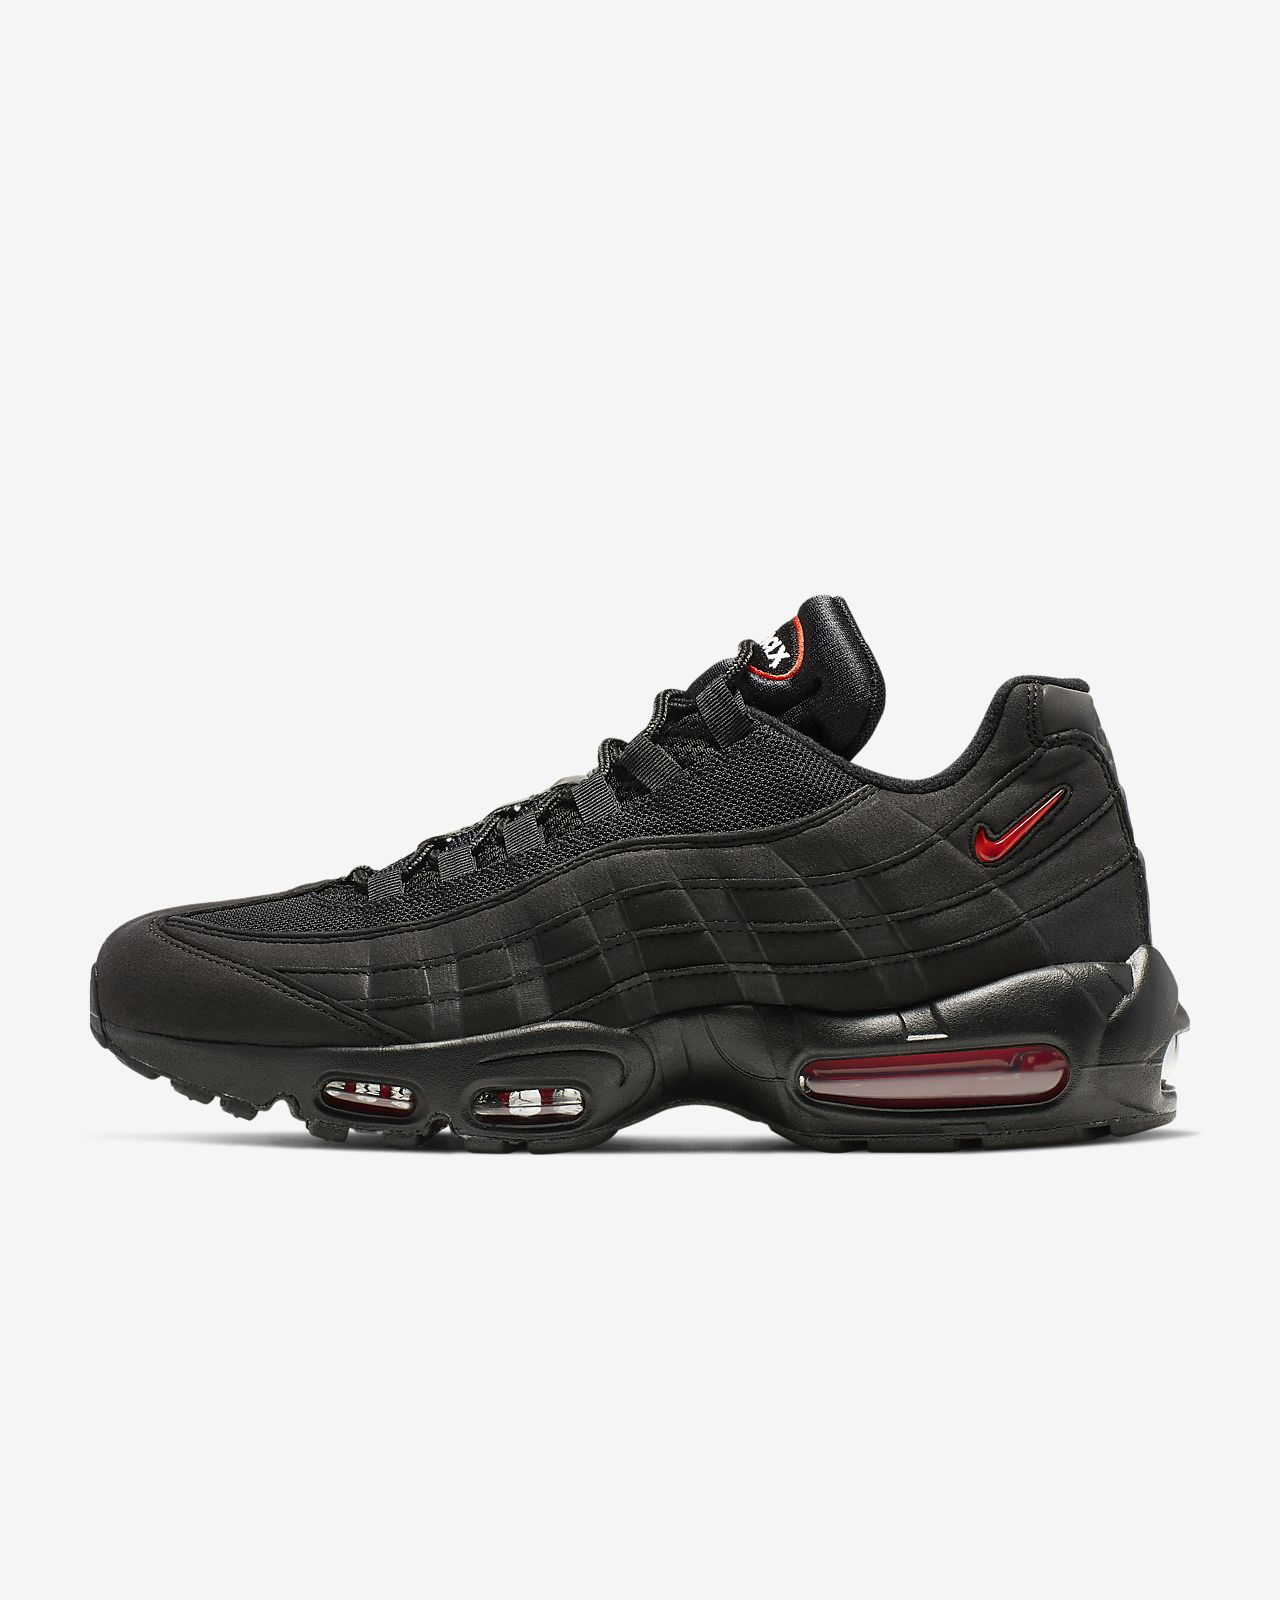 low priced 2afd2 1eac2 ... Chaussure Nike Air Max 95 SC pour Homme